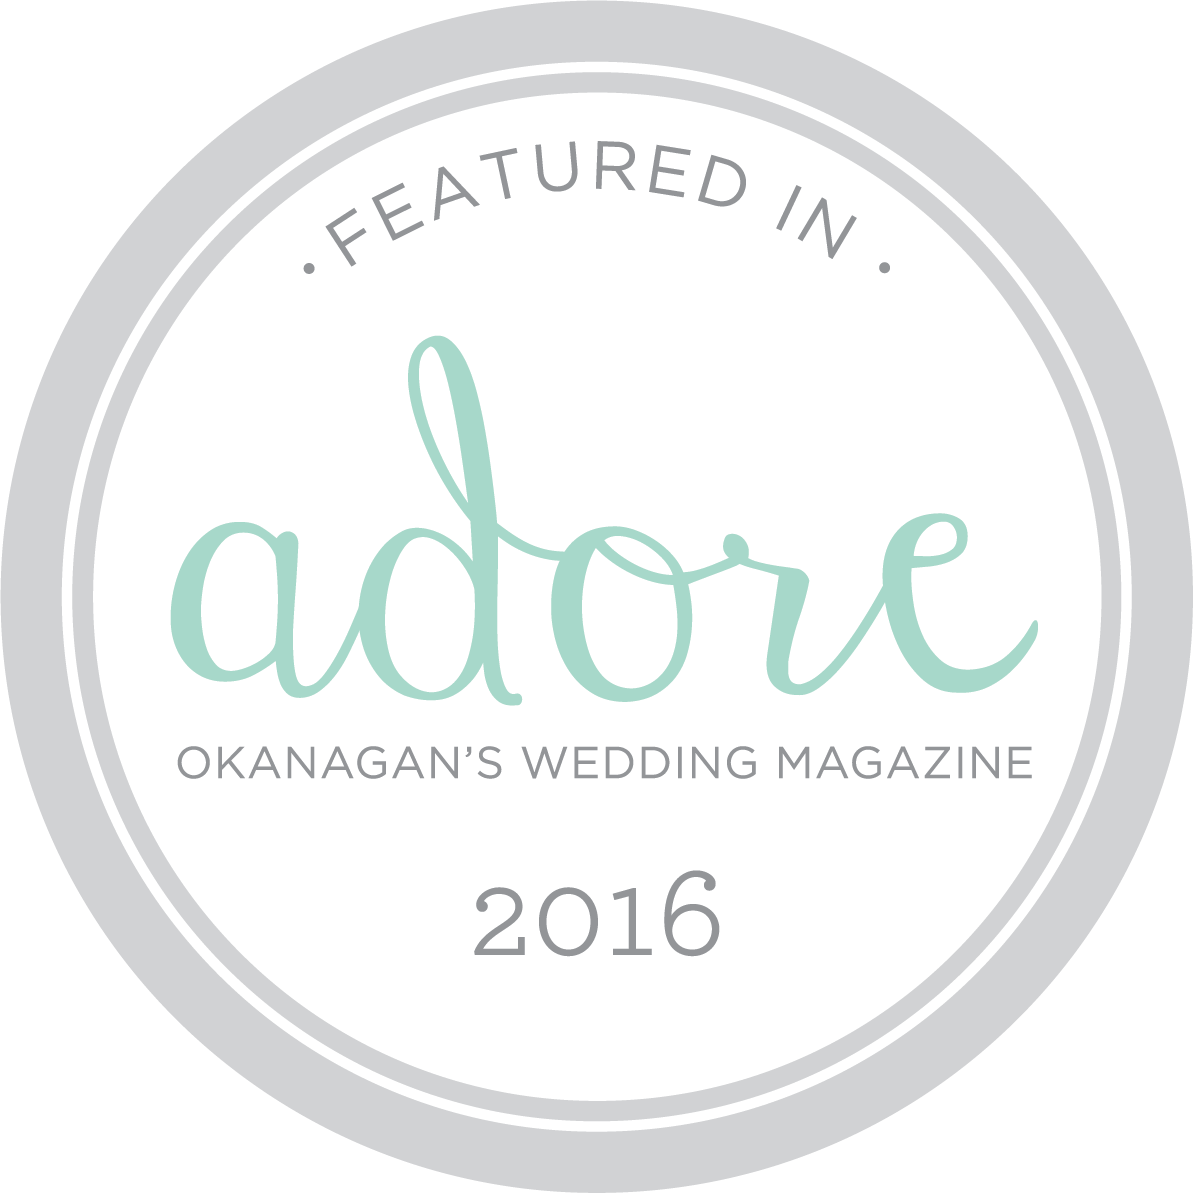 adoremagazine-2016-badge.png